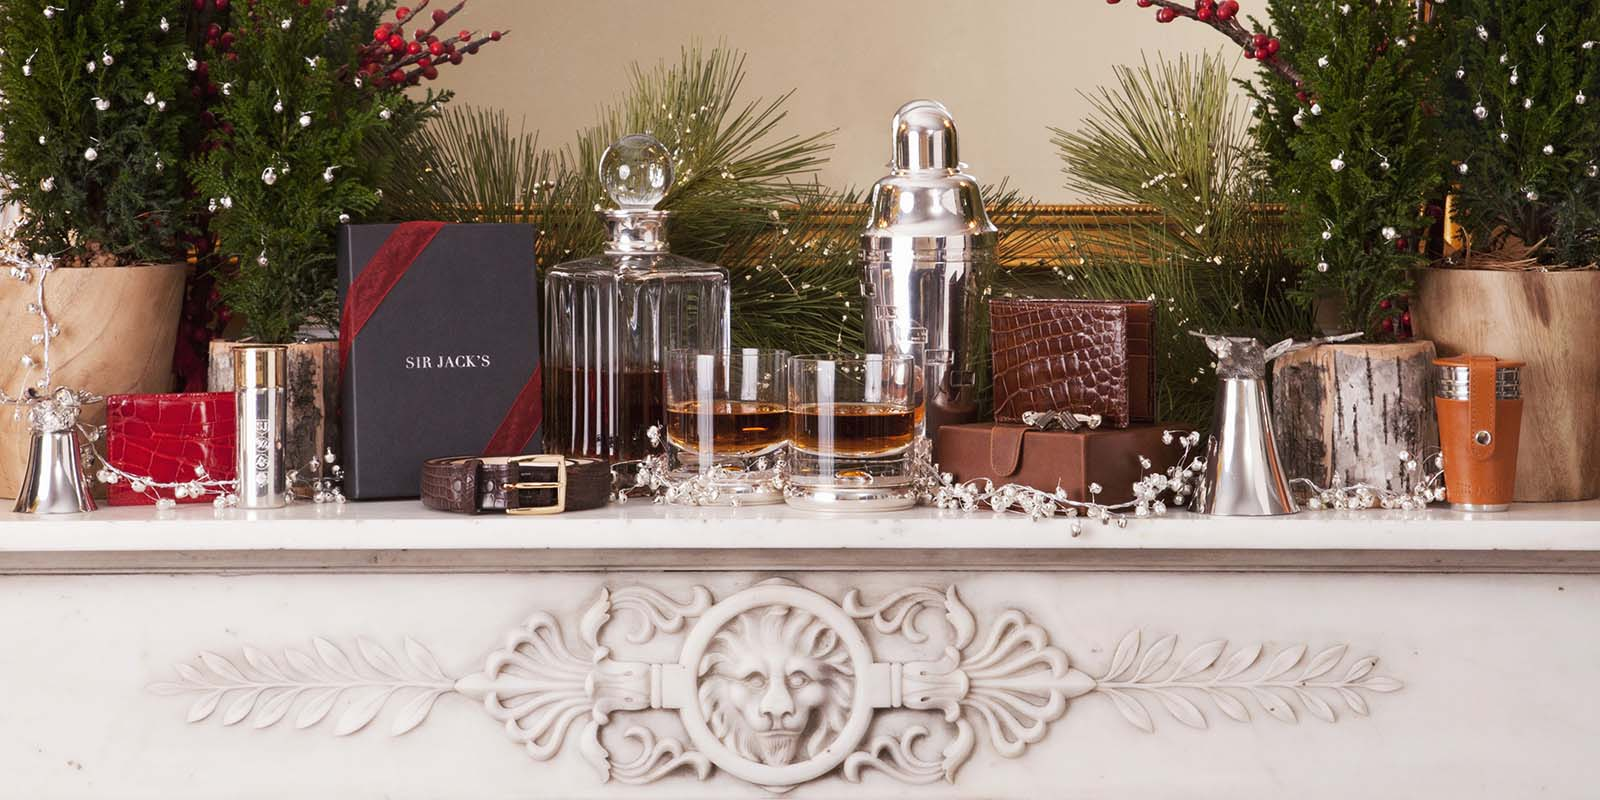 Sir Jack's luxury sterling gifts